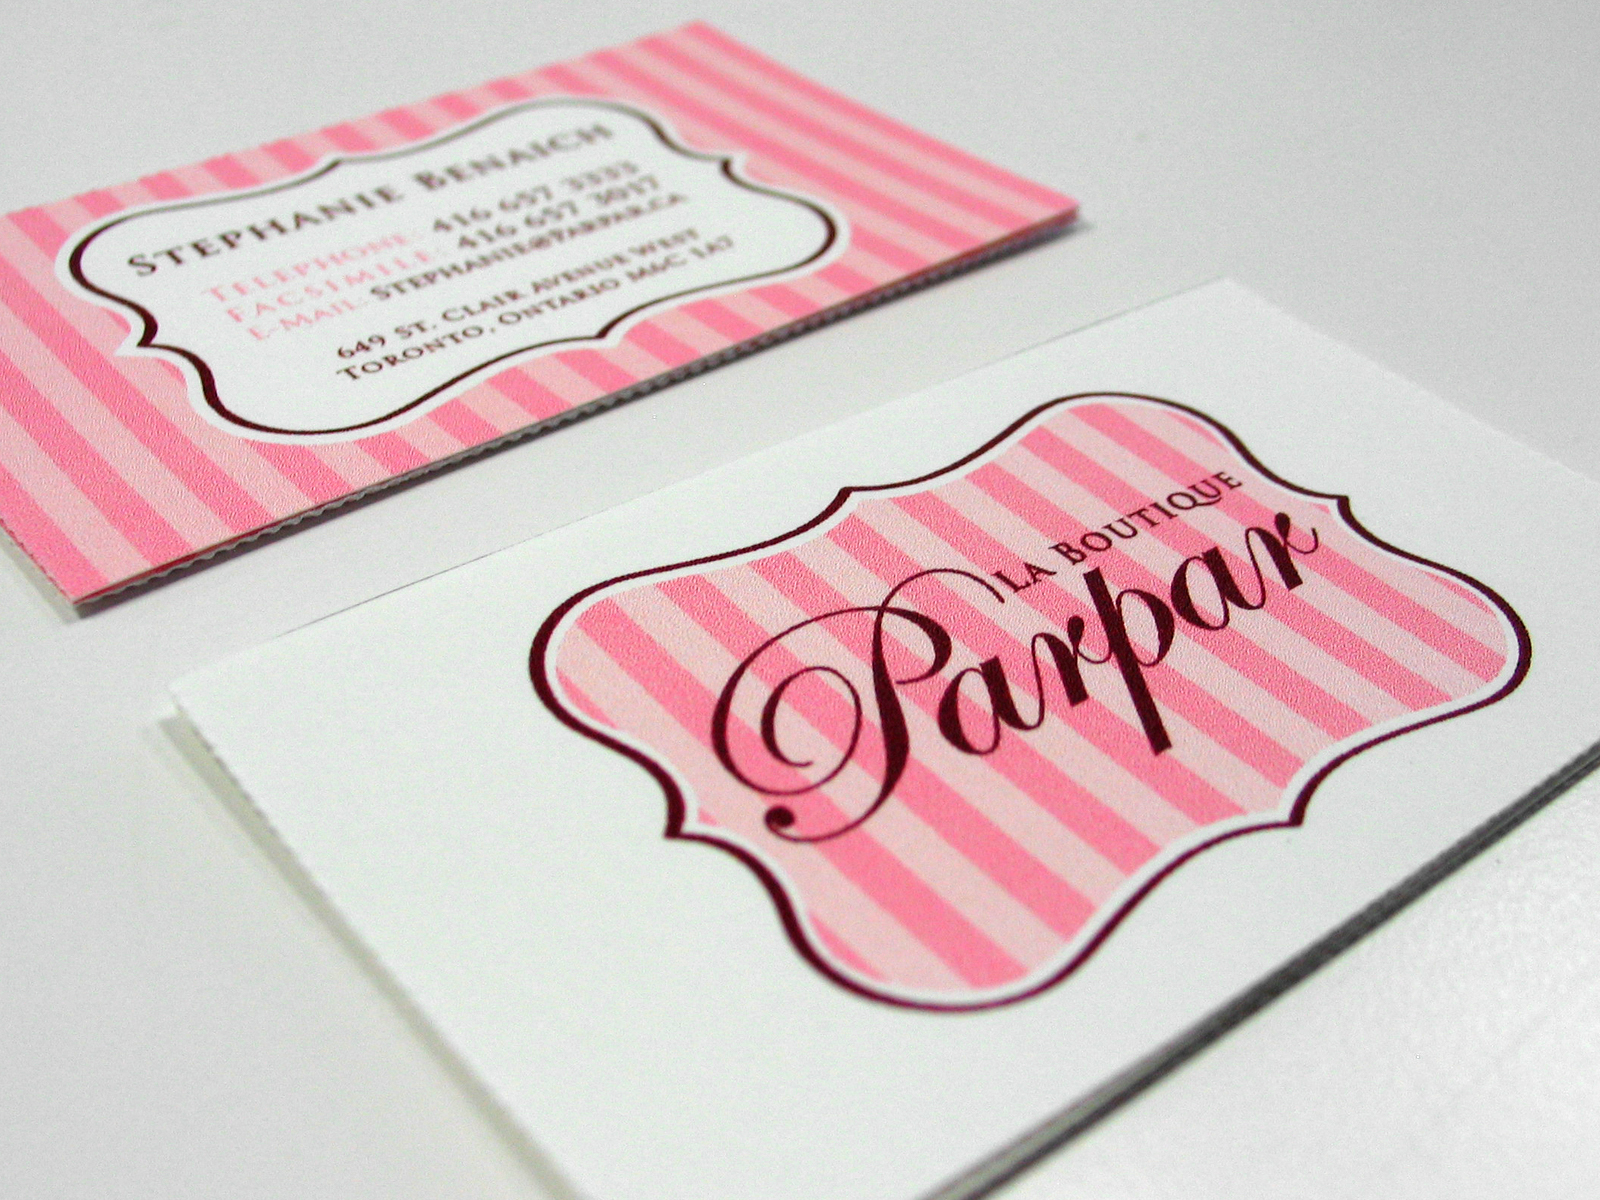 ParPar-Stationery.jpg